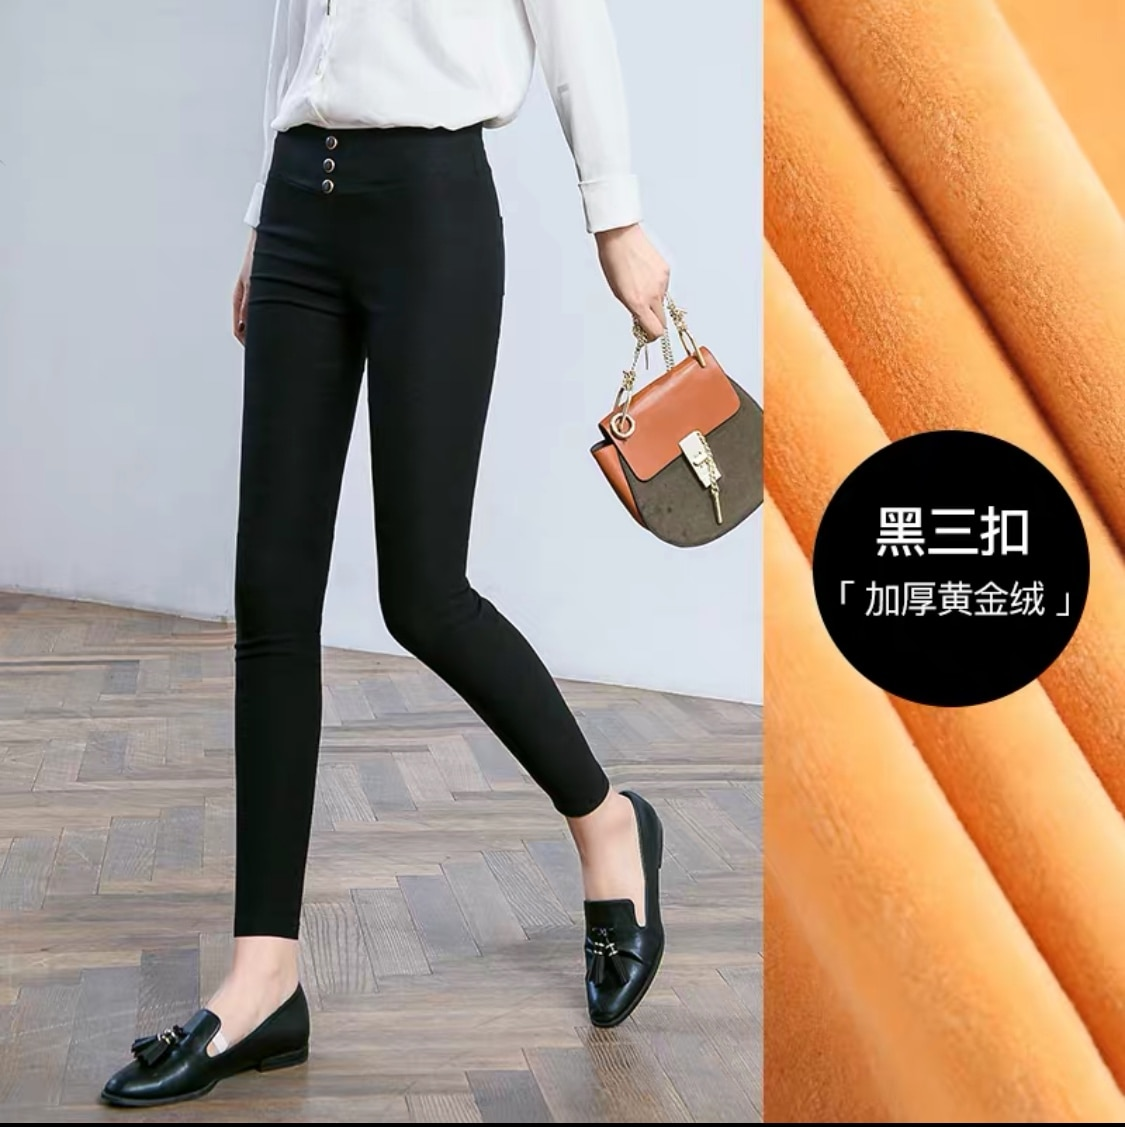 New elastic and velvet tight-fitting women's pants for autumn and winter woman pants pants women